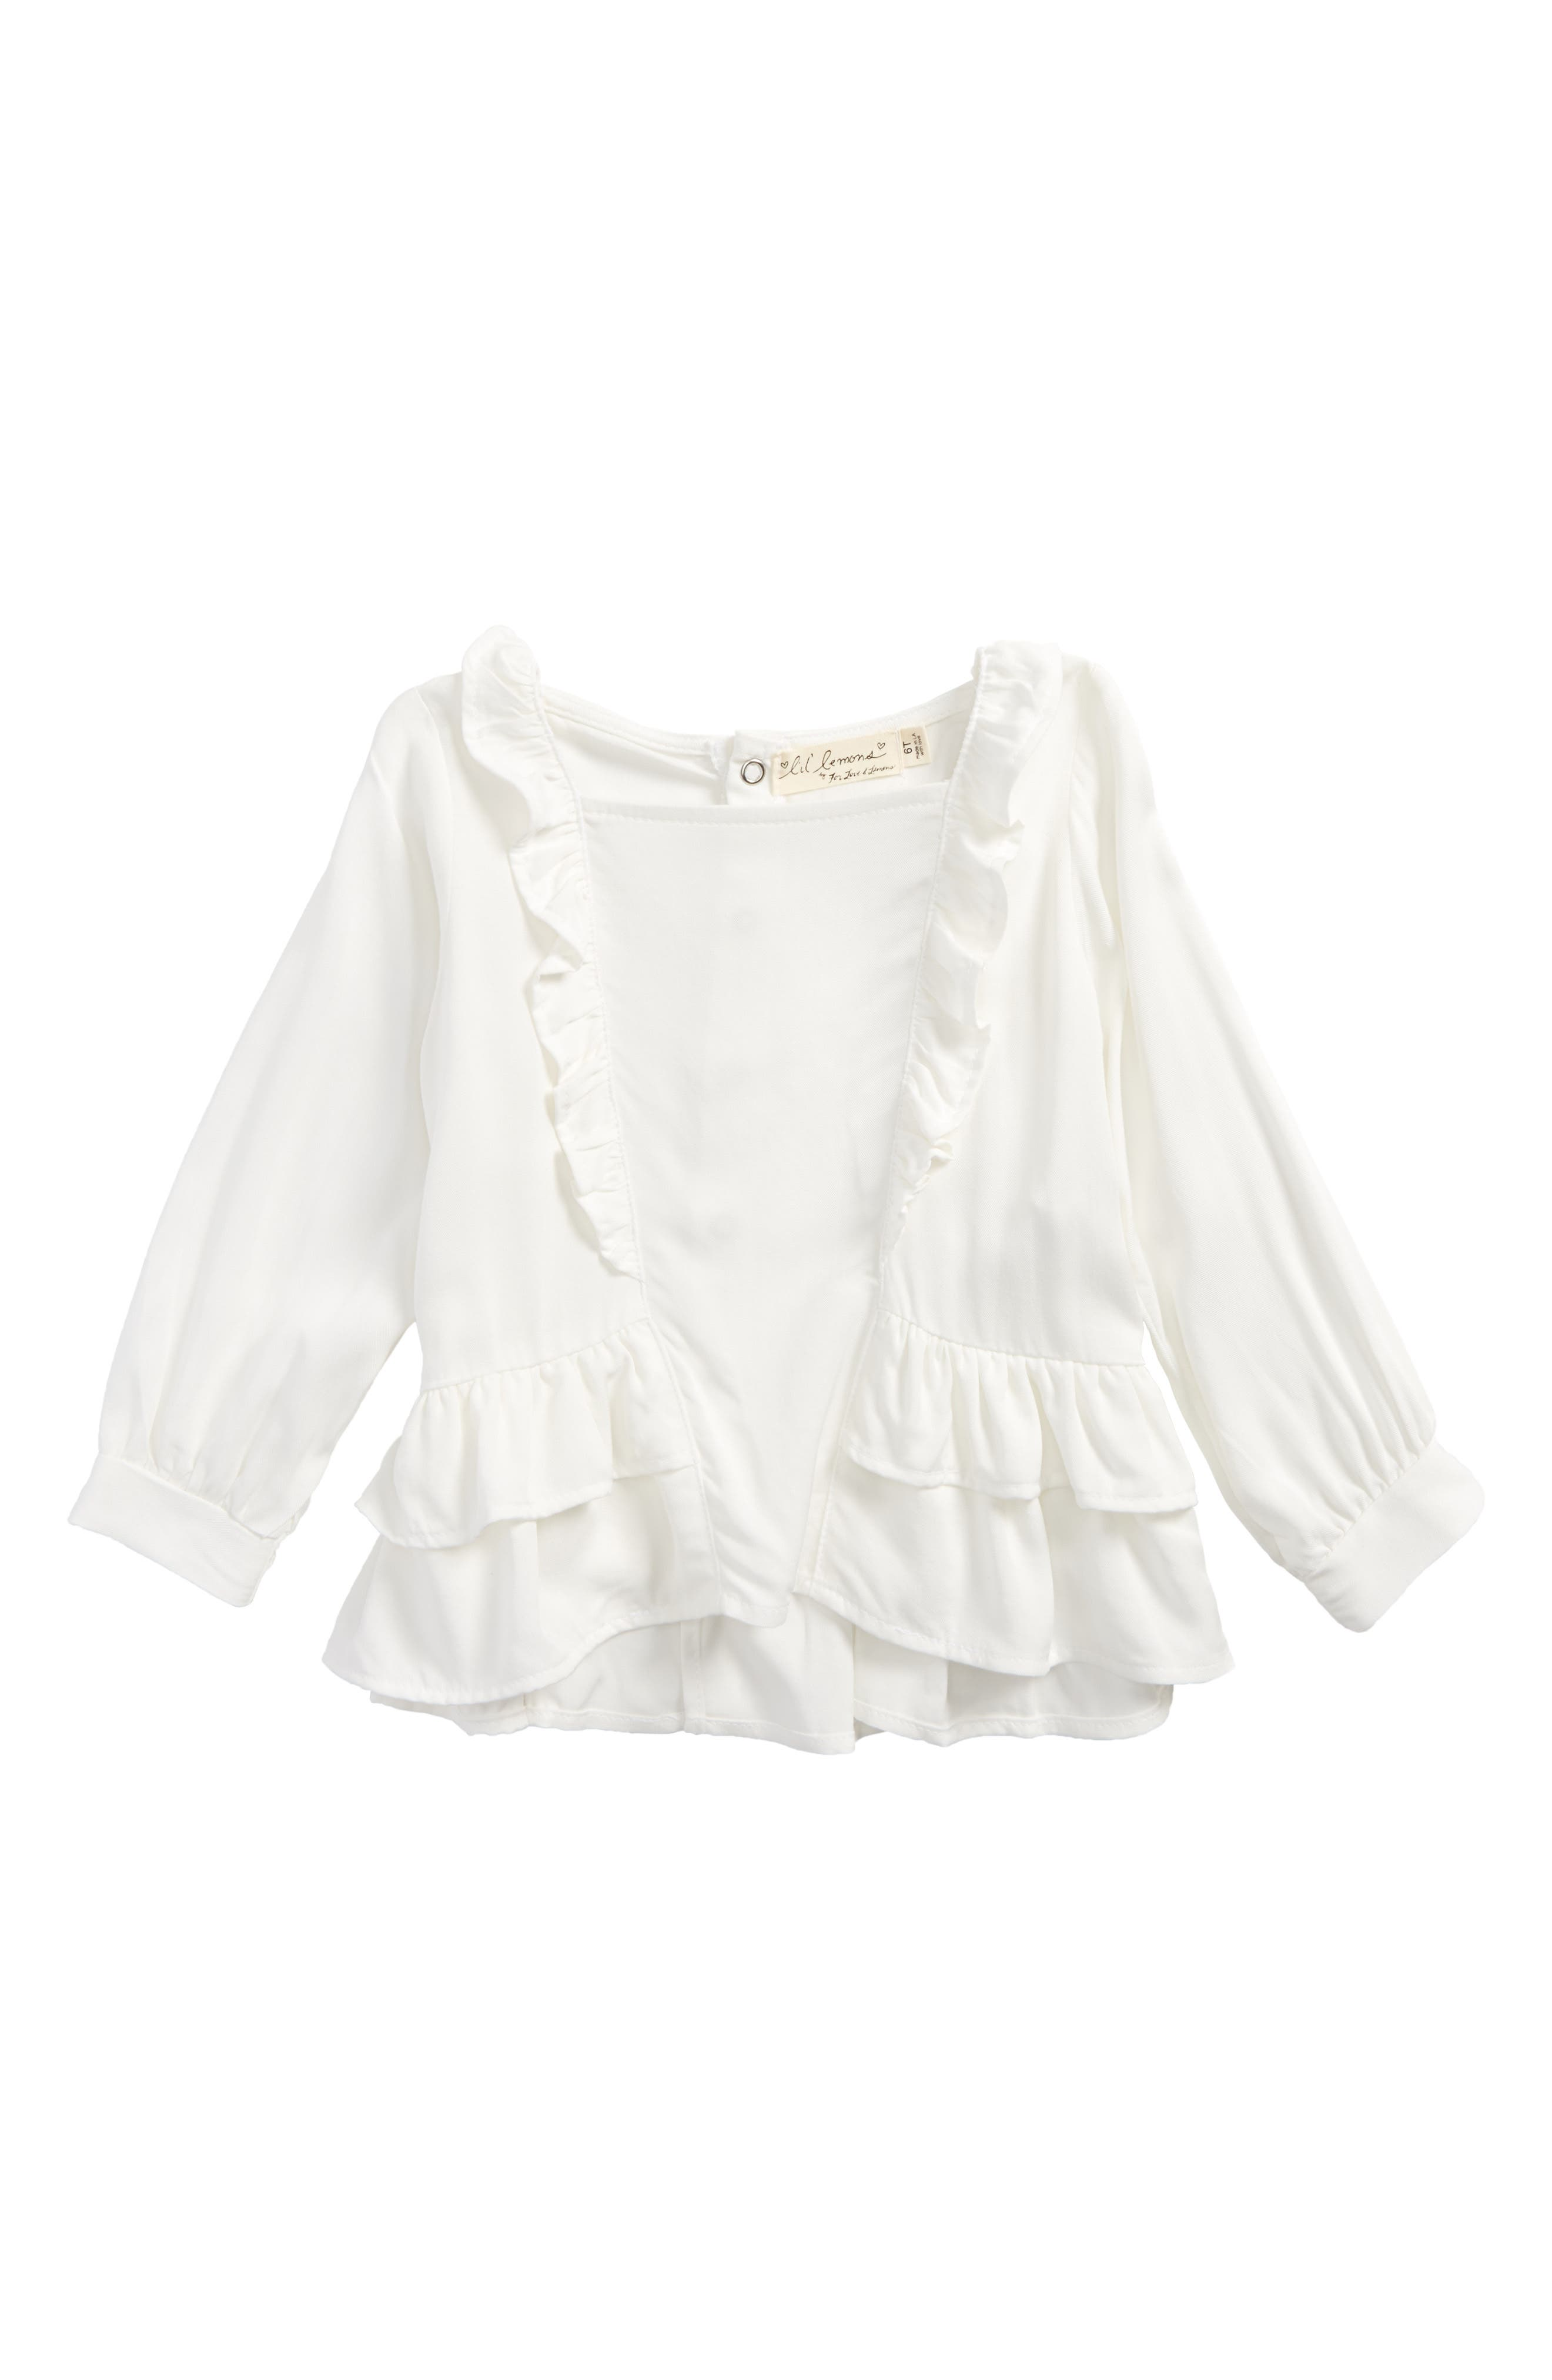 Main Image - For Love & Lemons White Rose Blouse (Toddler Girls & Little Girls)